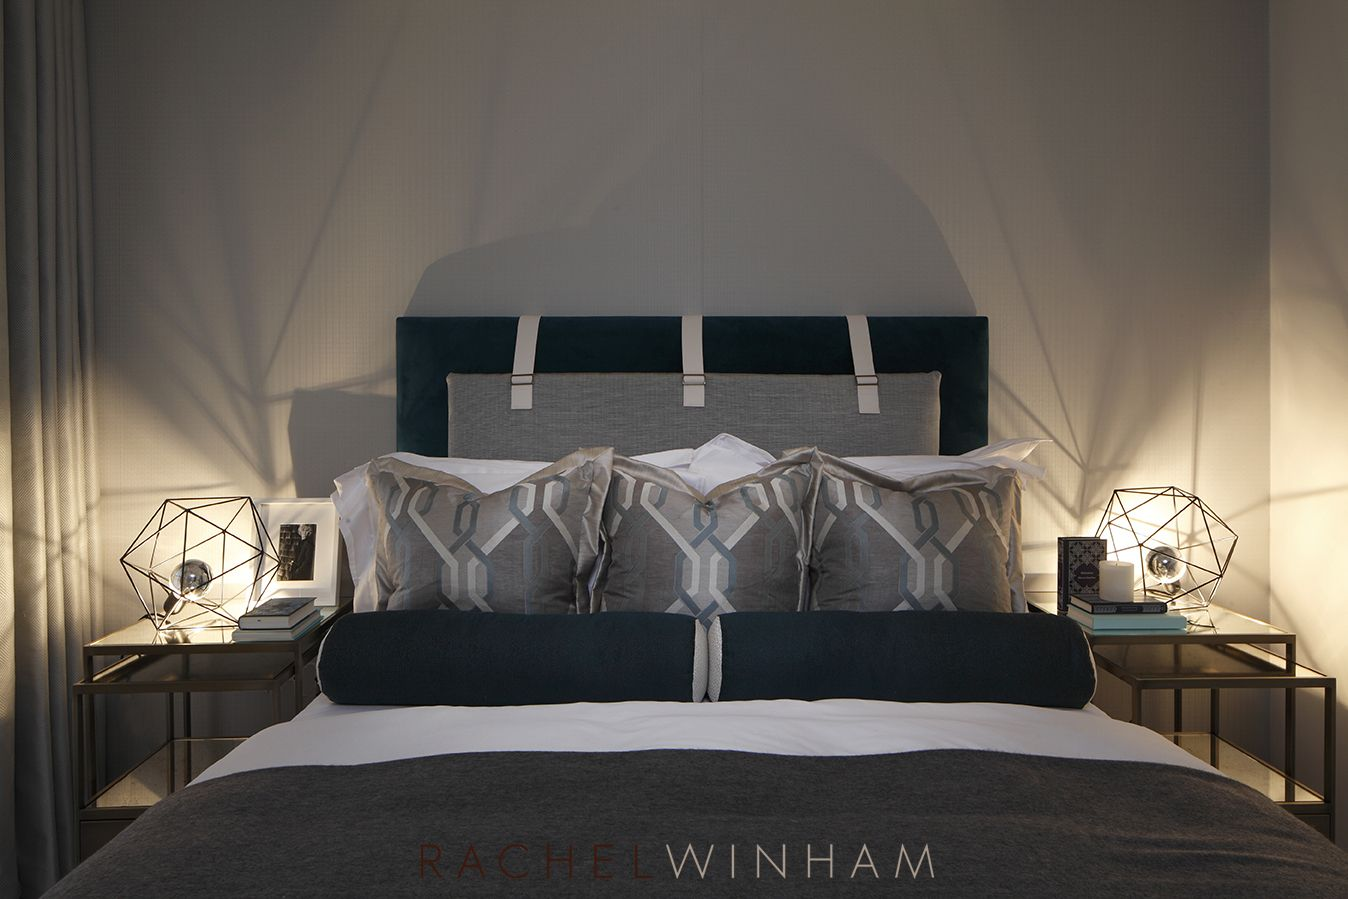 Bedroom Designed By Rachel Winham Interior Design For A Recent Project In  Fulham, London.